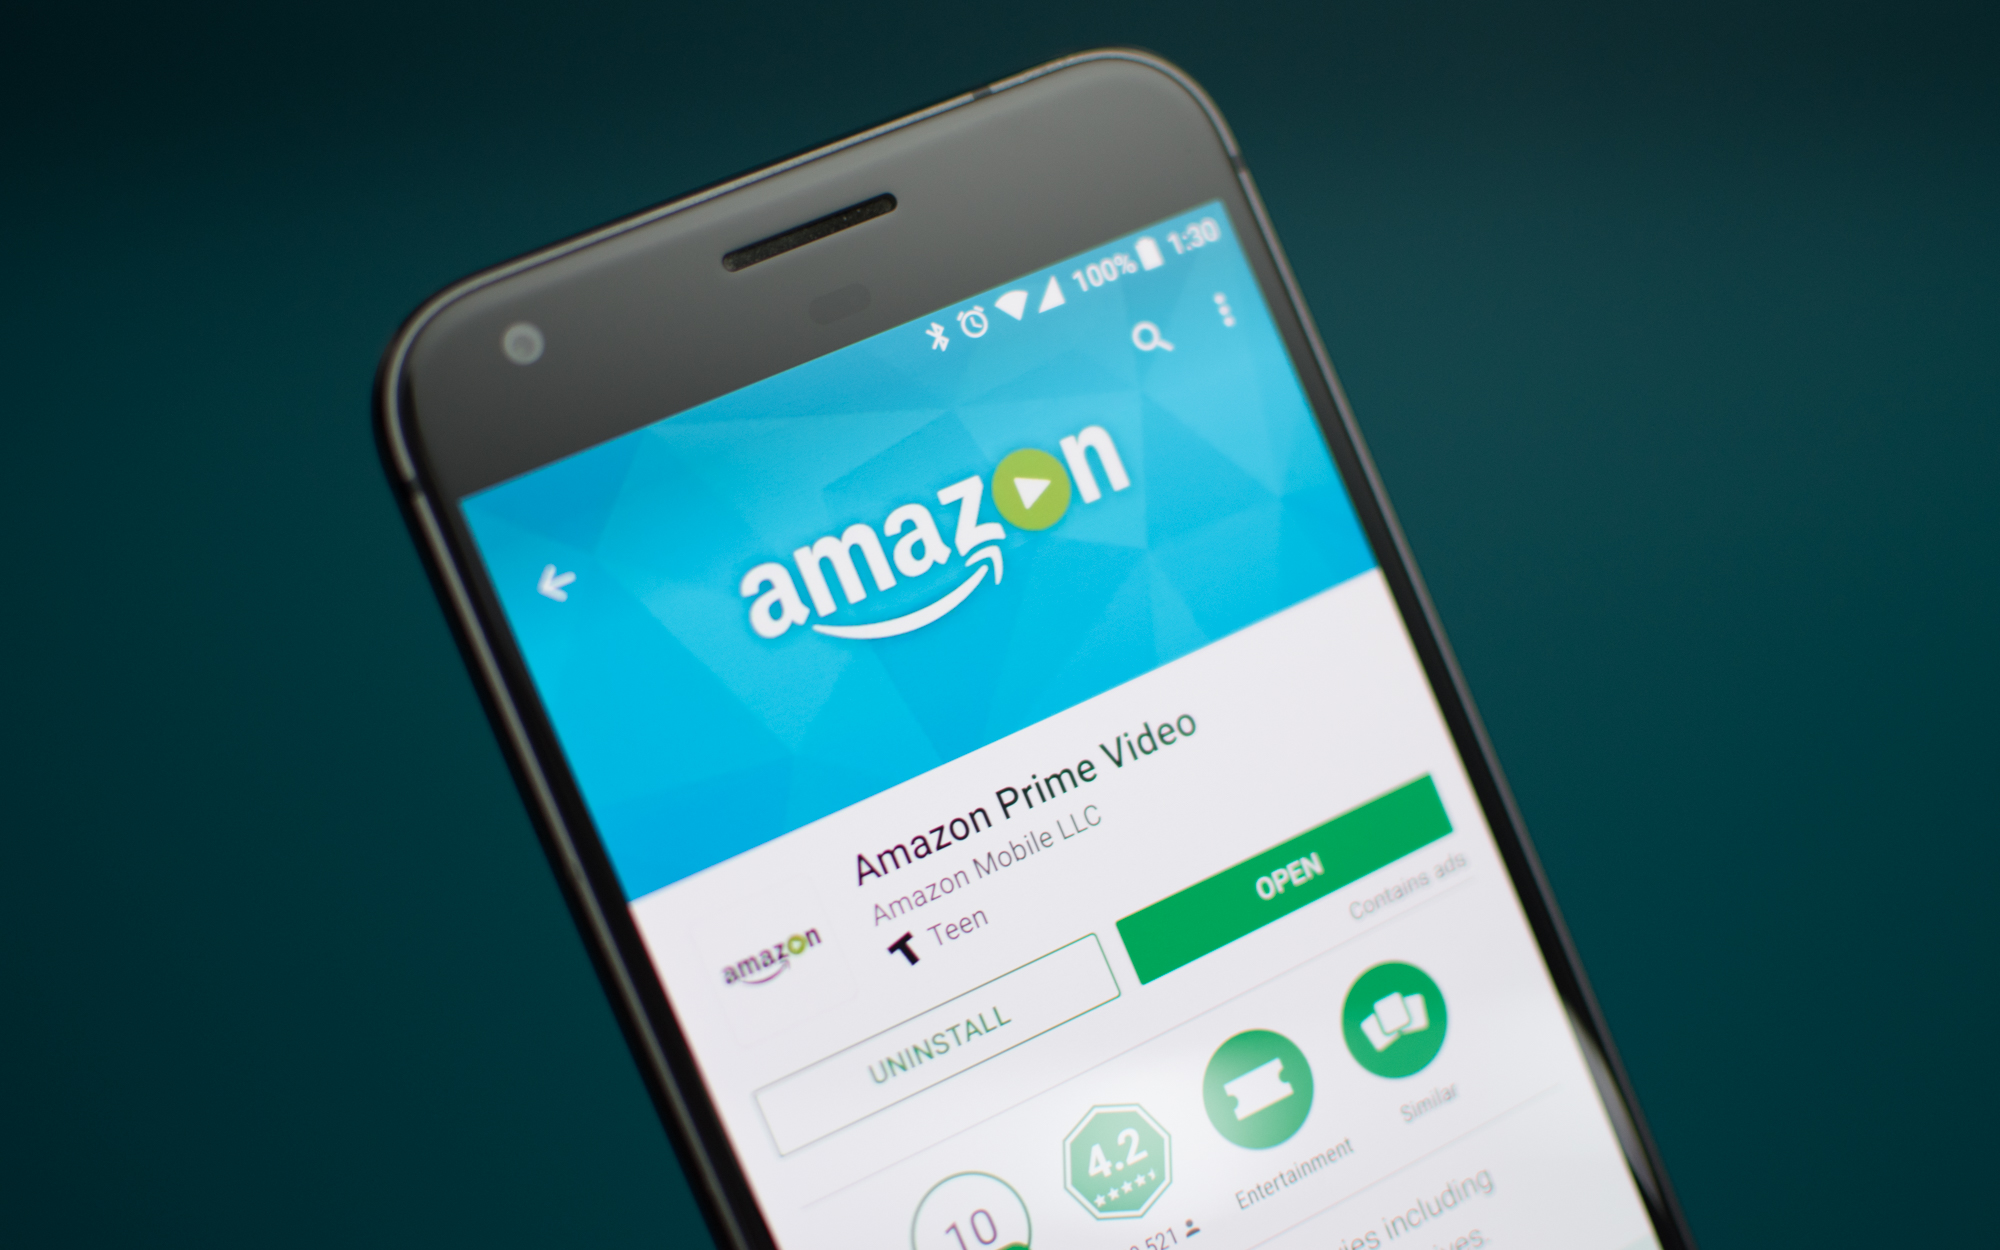 Amazon Prime Video is coming to Chromecast and Android TV, YouTube will head to Fire TV